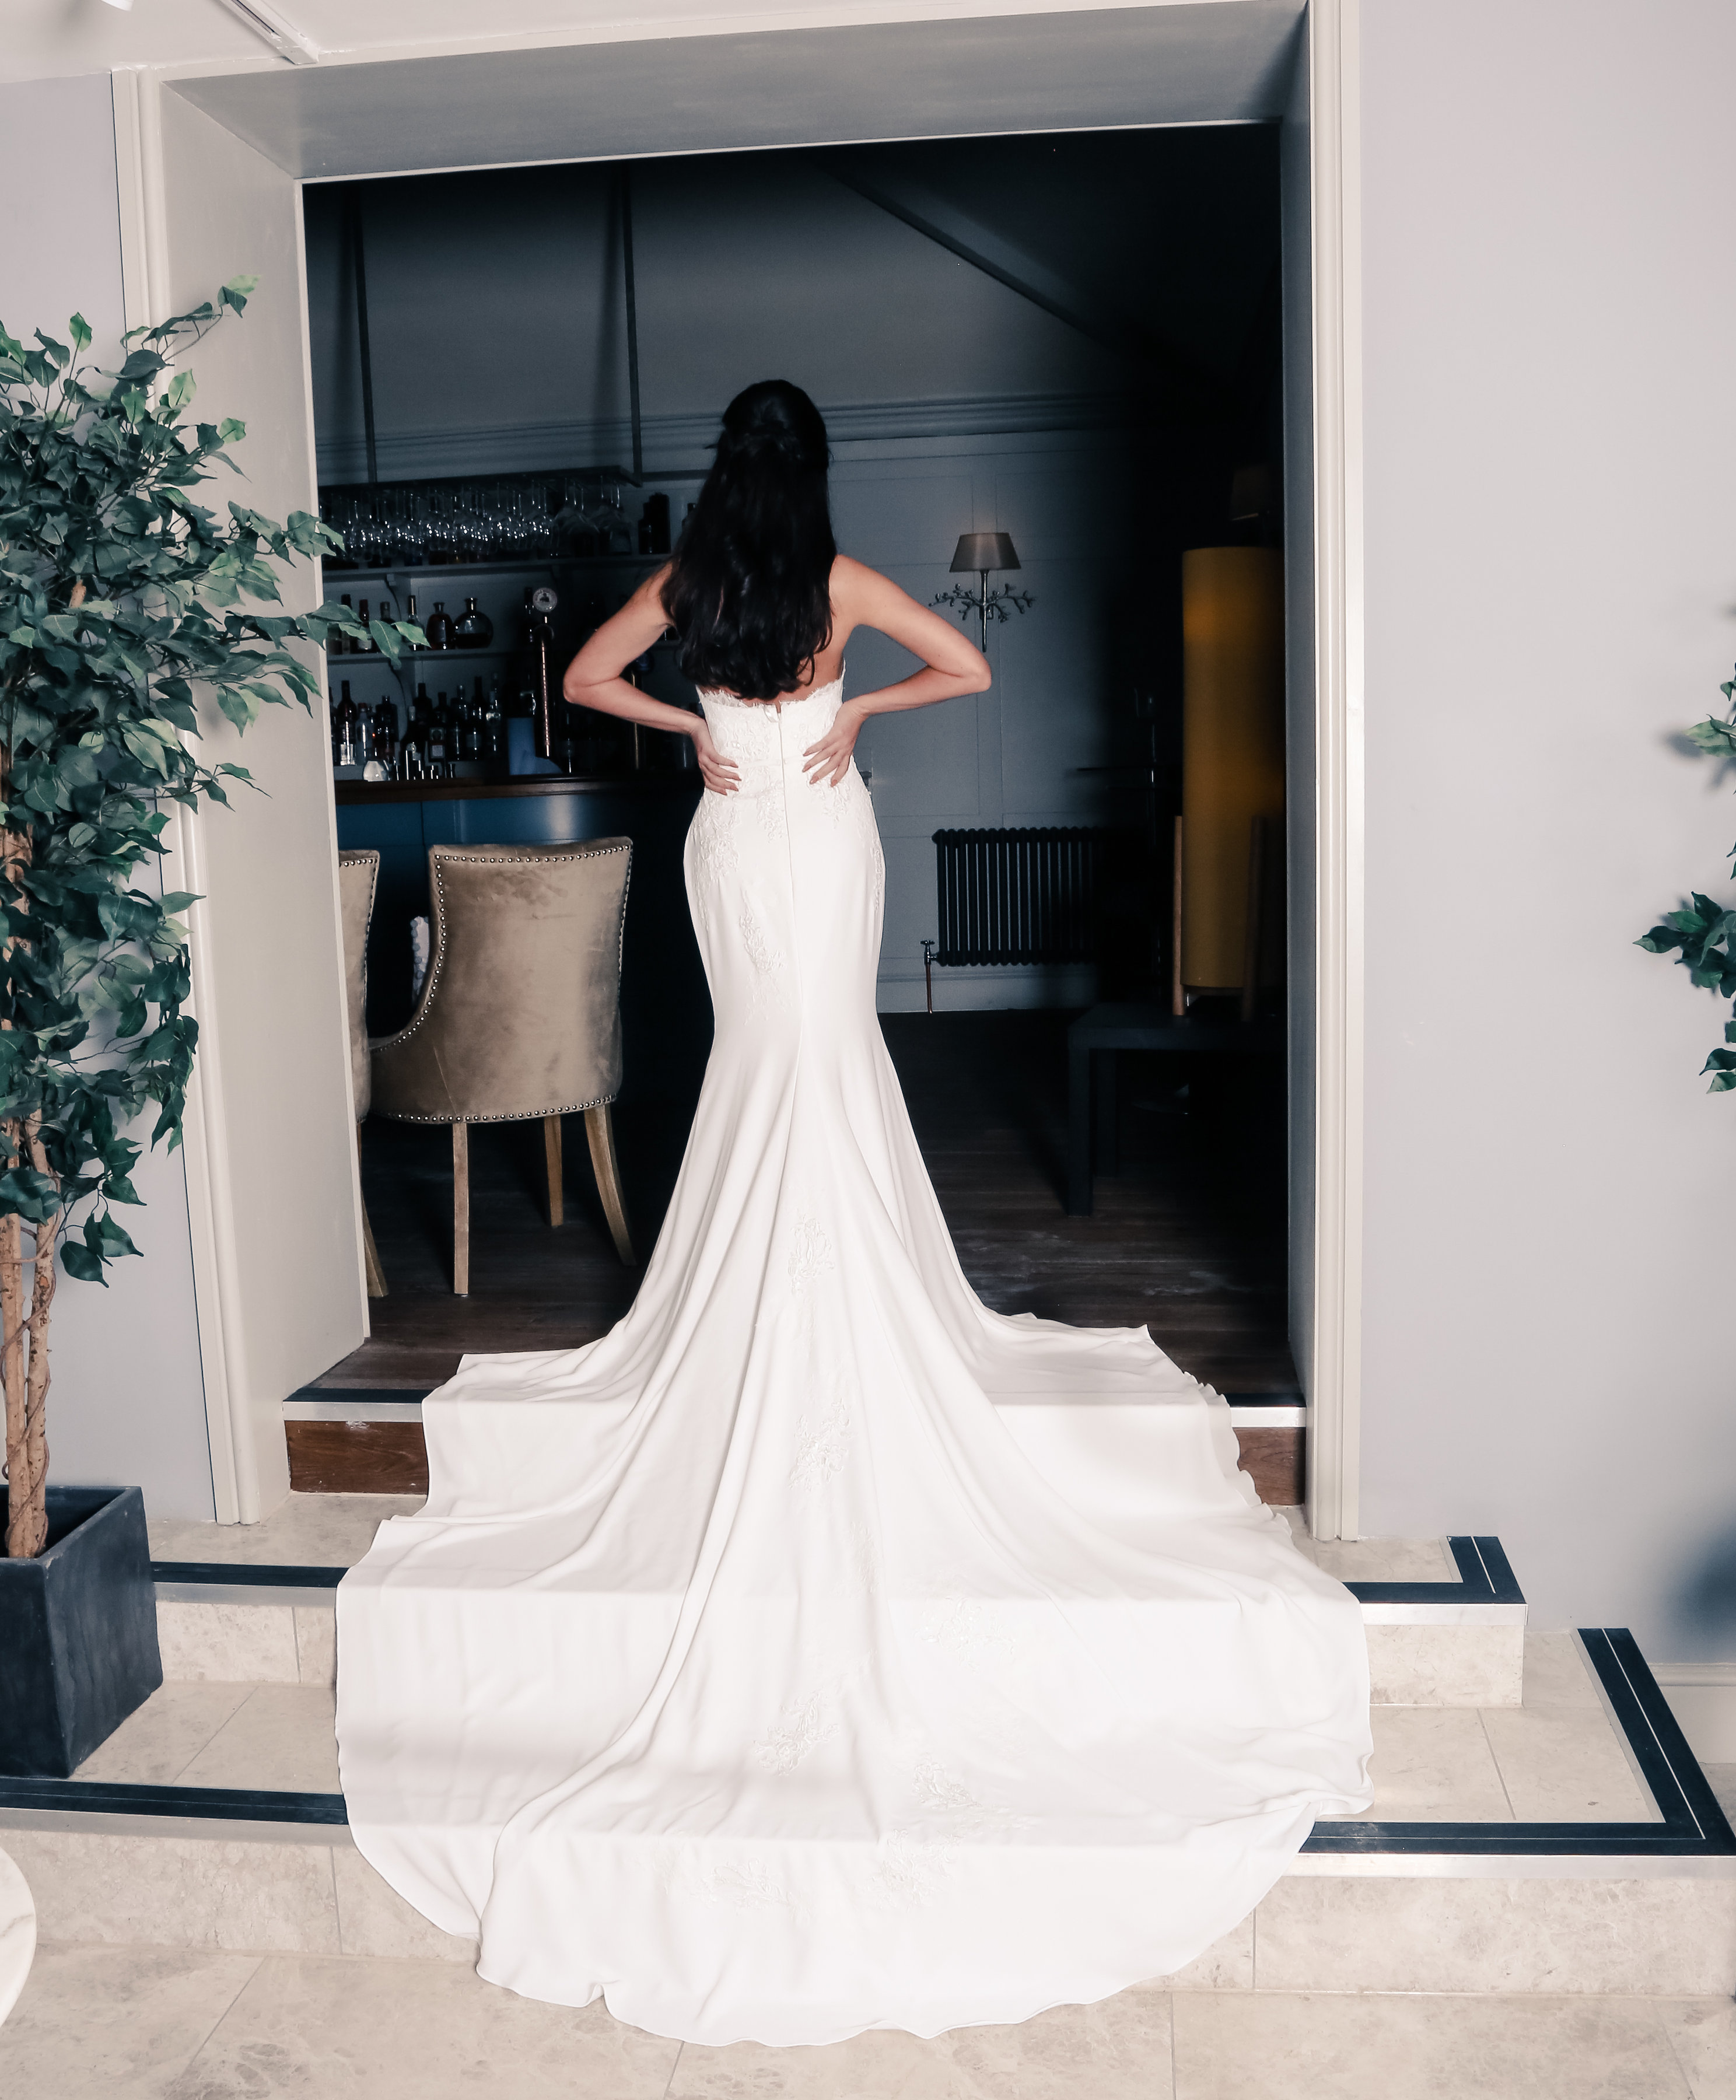 CocoMio Bridal: Styled Shoot at Fairyhill, The GowerCocoMio Bridal